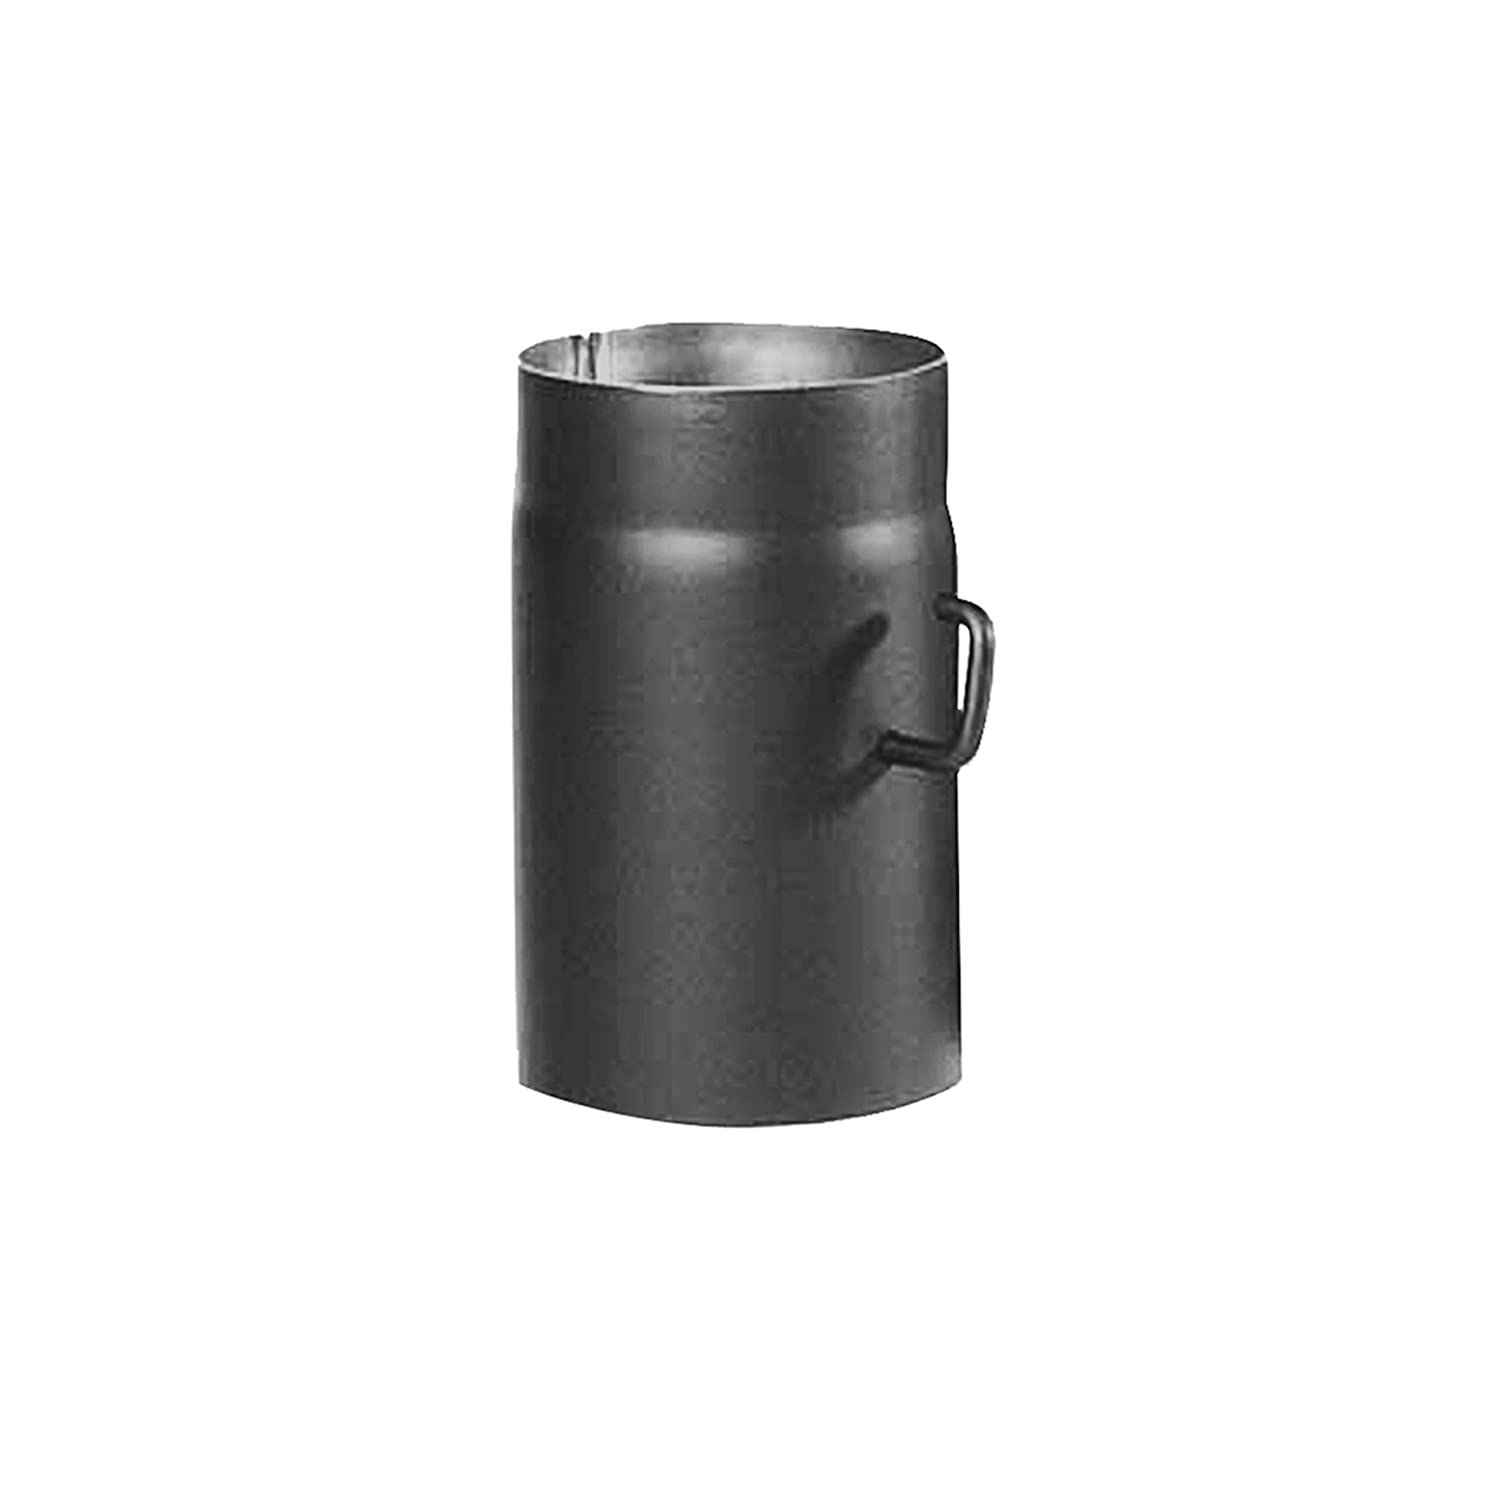 Kamino - Flam Ø 120 mm Stove Pipe with Throttle, approx. 250 mm Straight Length Flue Pipe with Damper, Steel Stove Pipe Extension with with Throttle Flap, Heat Resistant Senotherm Coating, Grey 331726